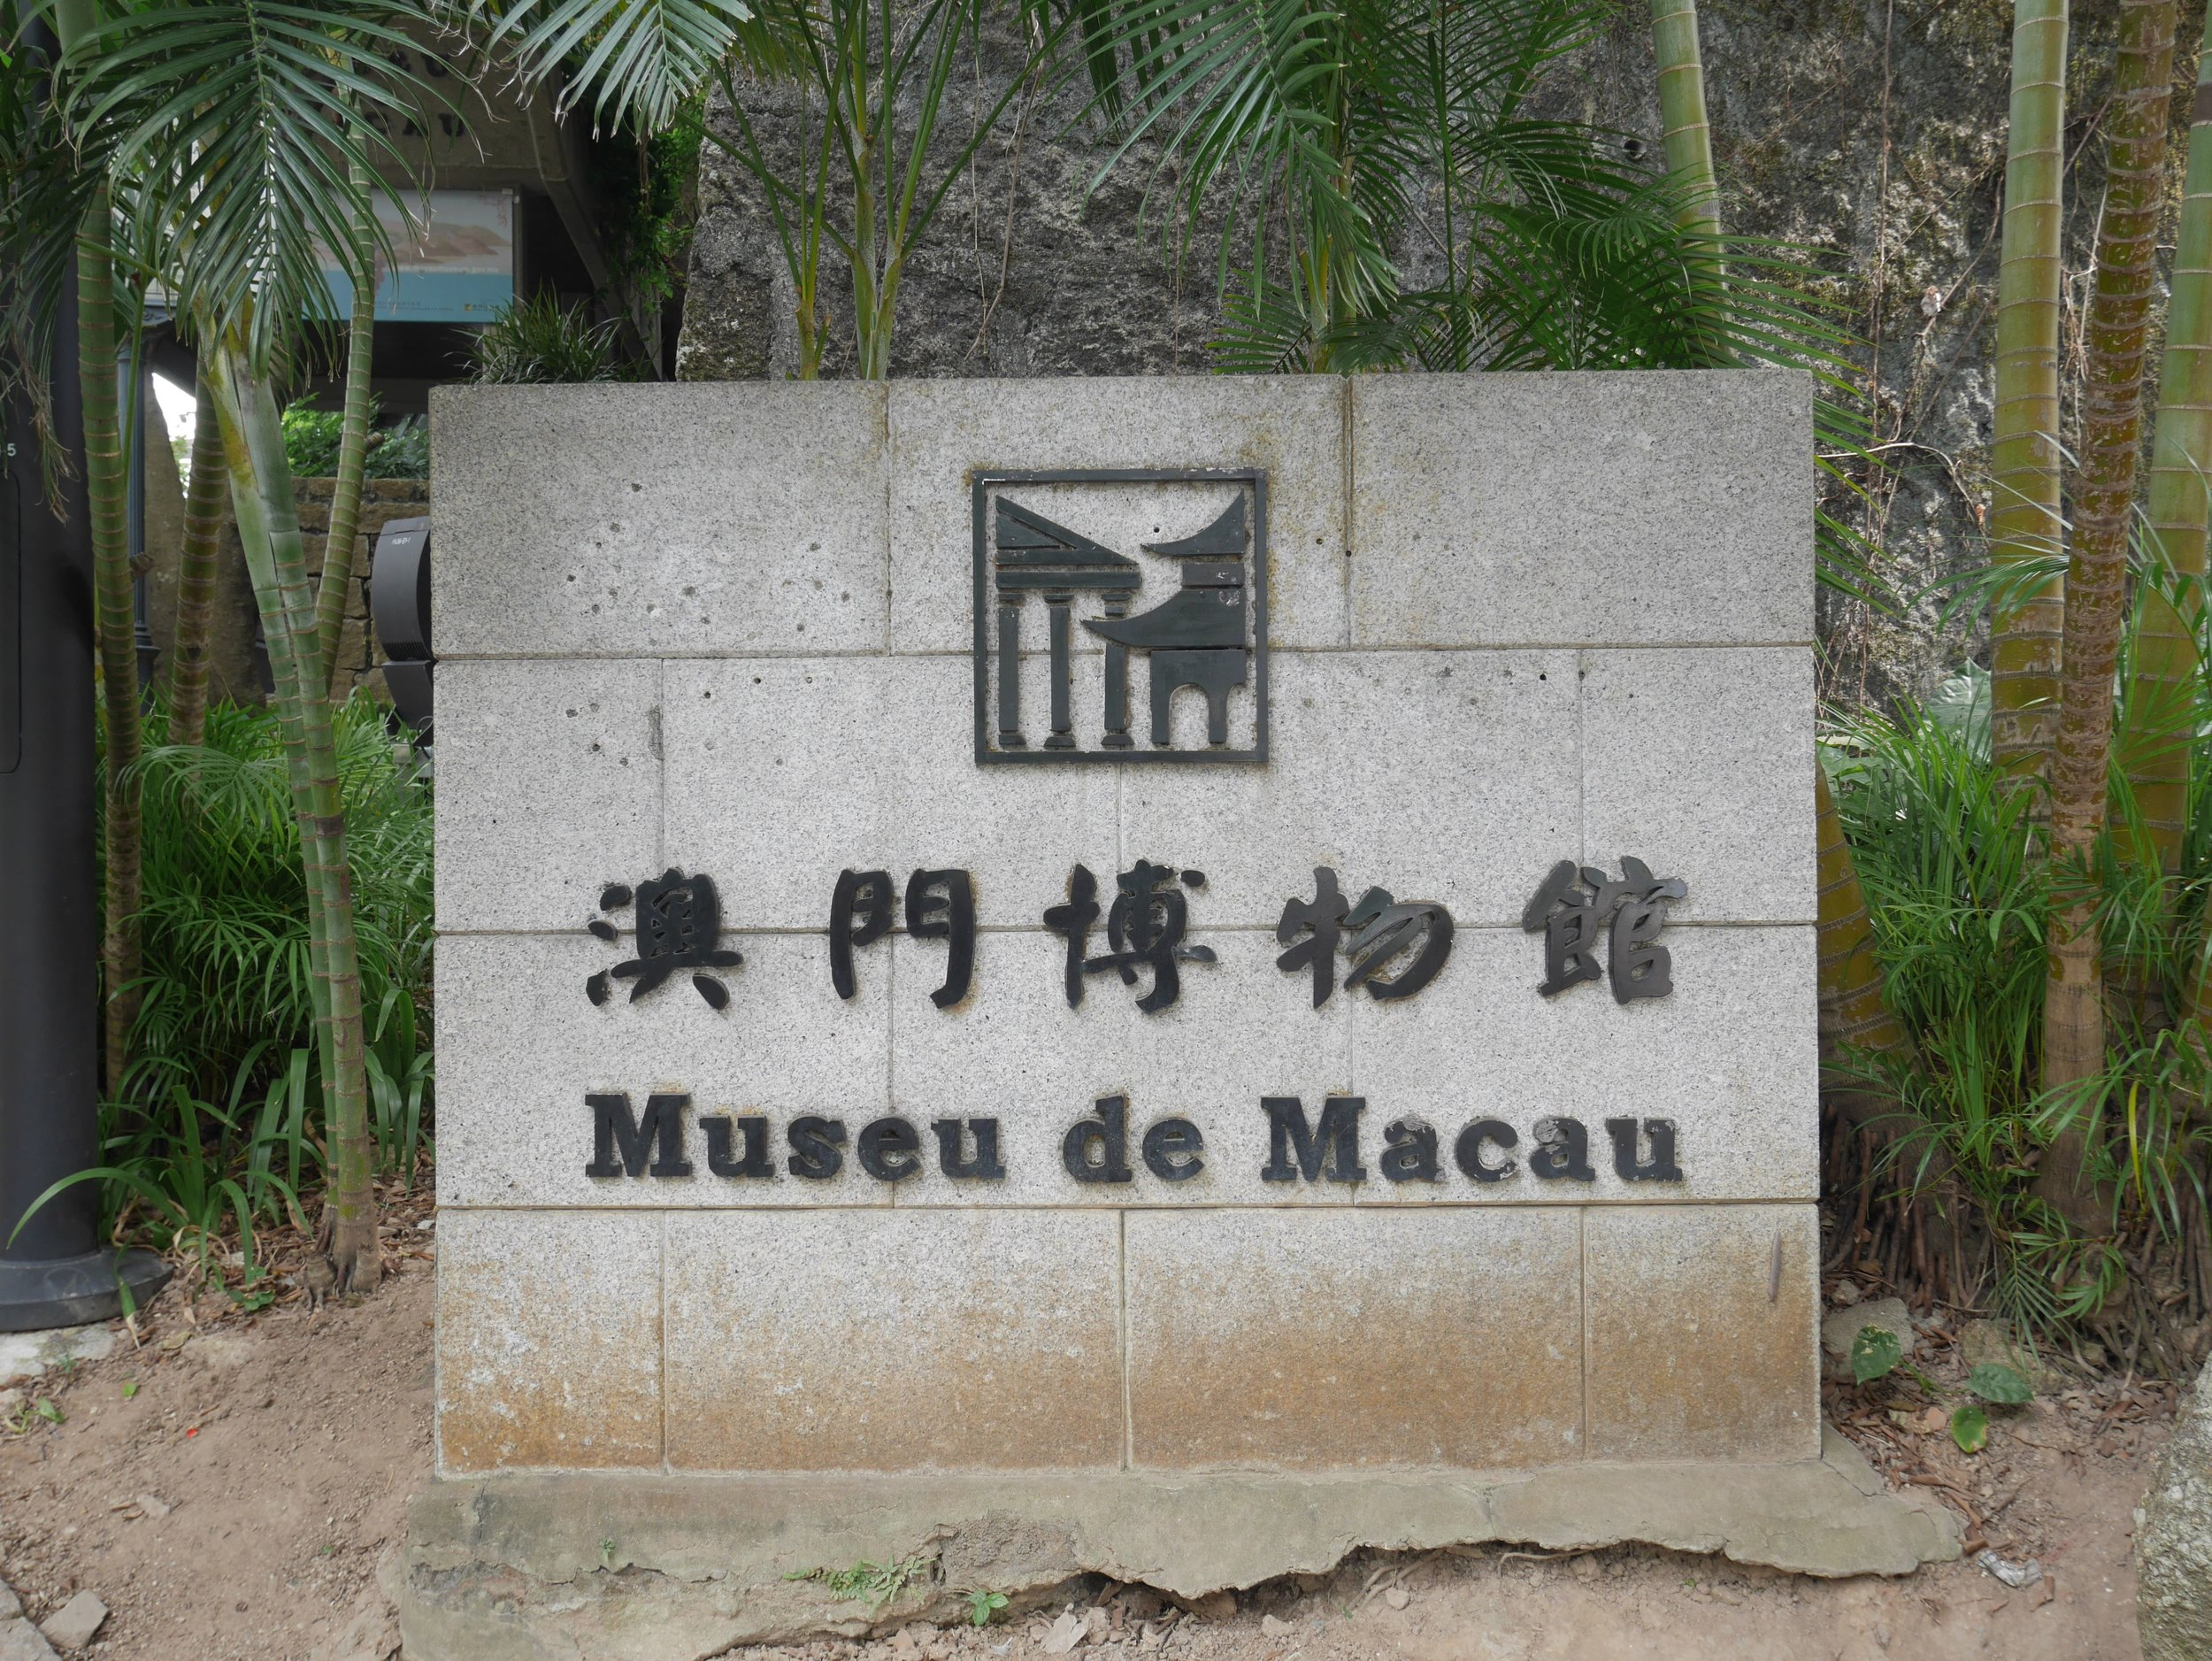 The entrance to the Macau Museum